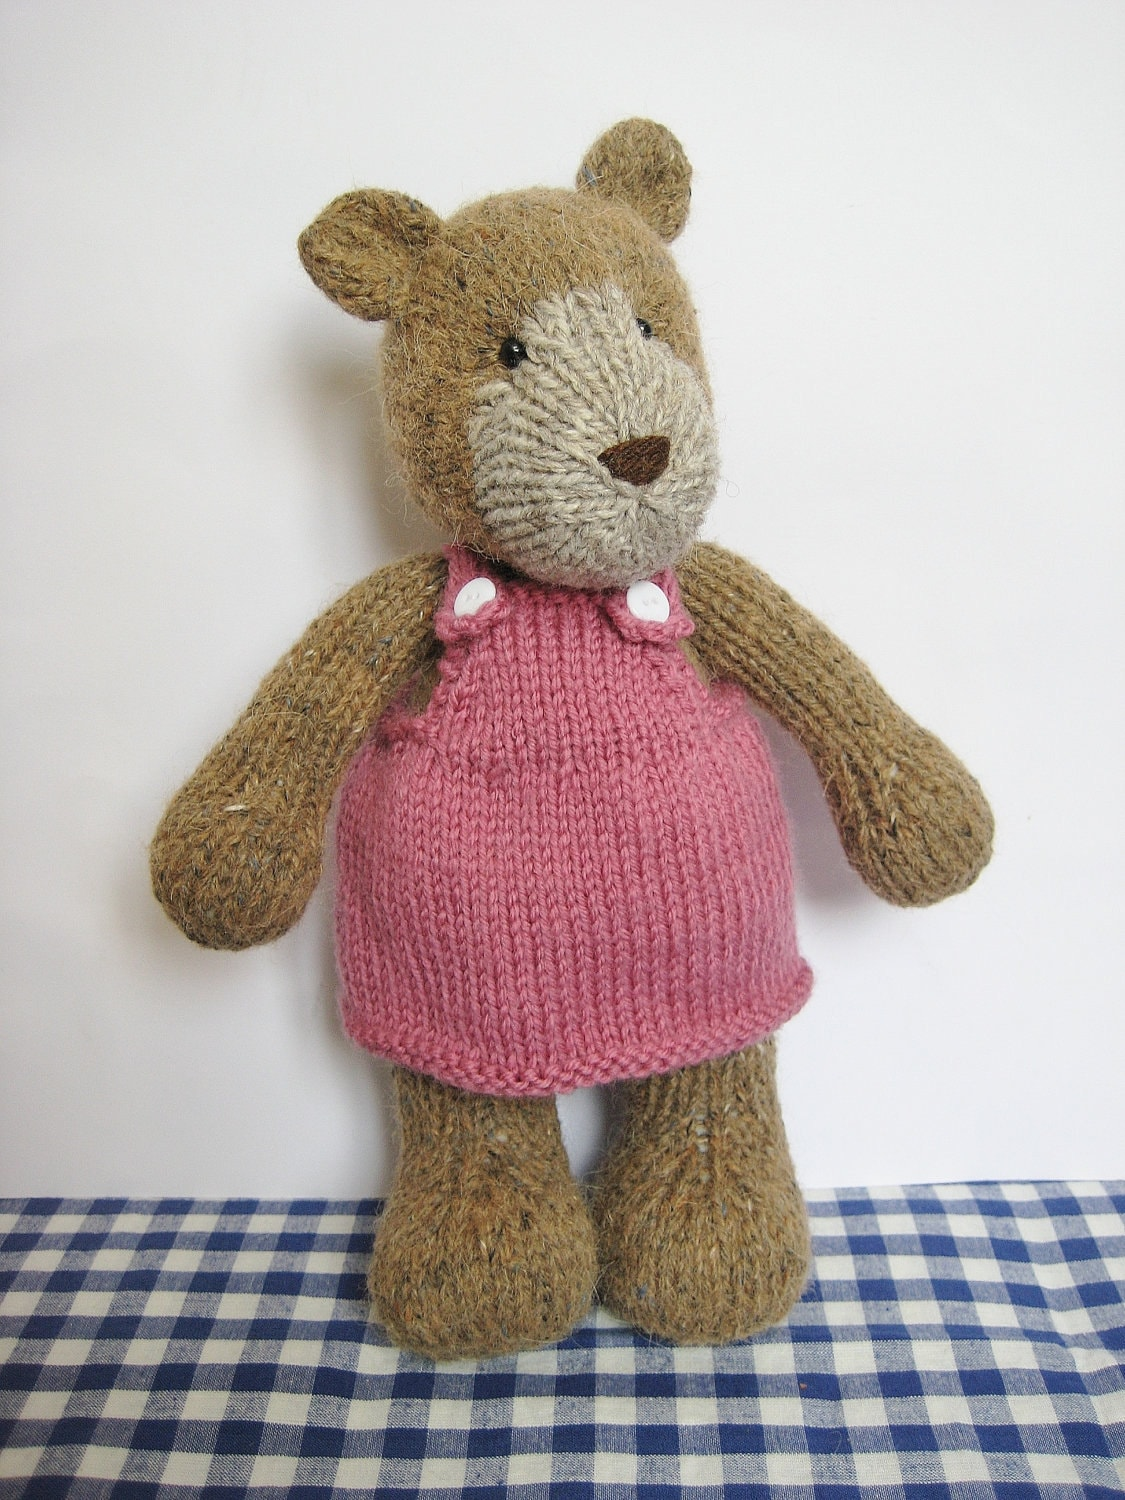 Knit Bear Pattern : Teddy bear knitting pattern by fluffandfuzz on Etsy